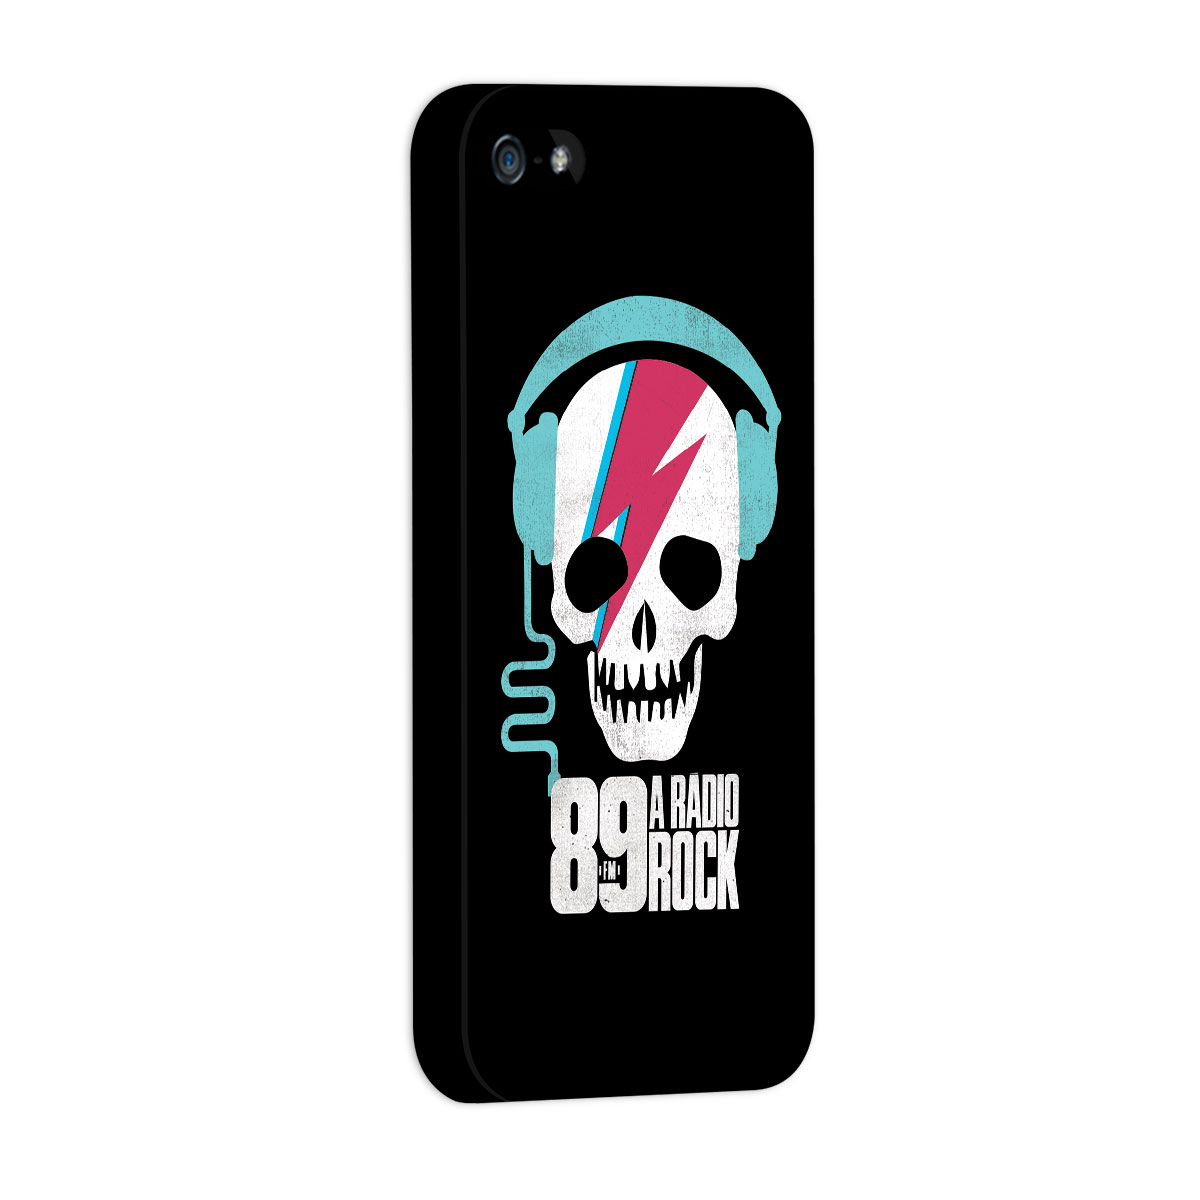 Capa de iPhone 5/5S 89 FM Thunder Skull